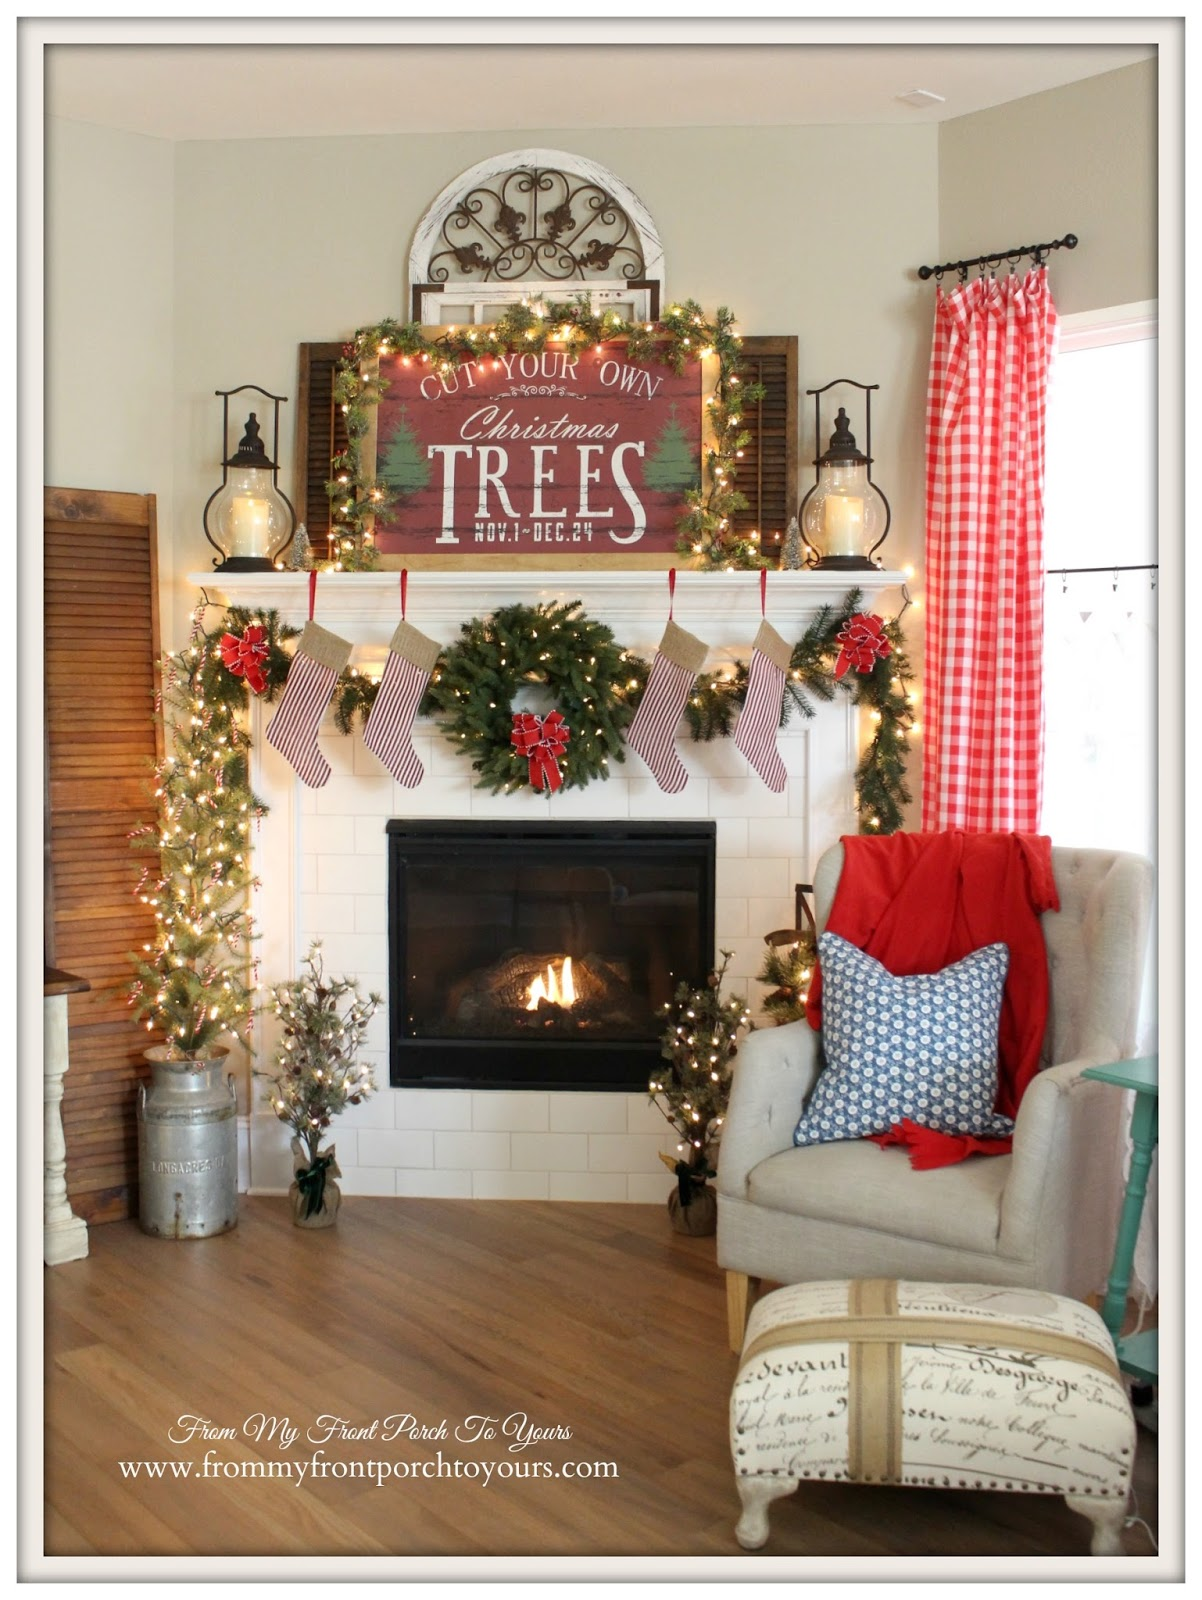 Farmhouse Rustic Fireplace Mantel Decor From My Front Porch To Yours Farmhouse Christmas Mantel